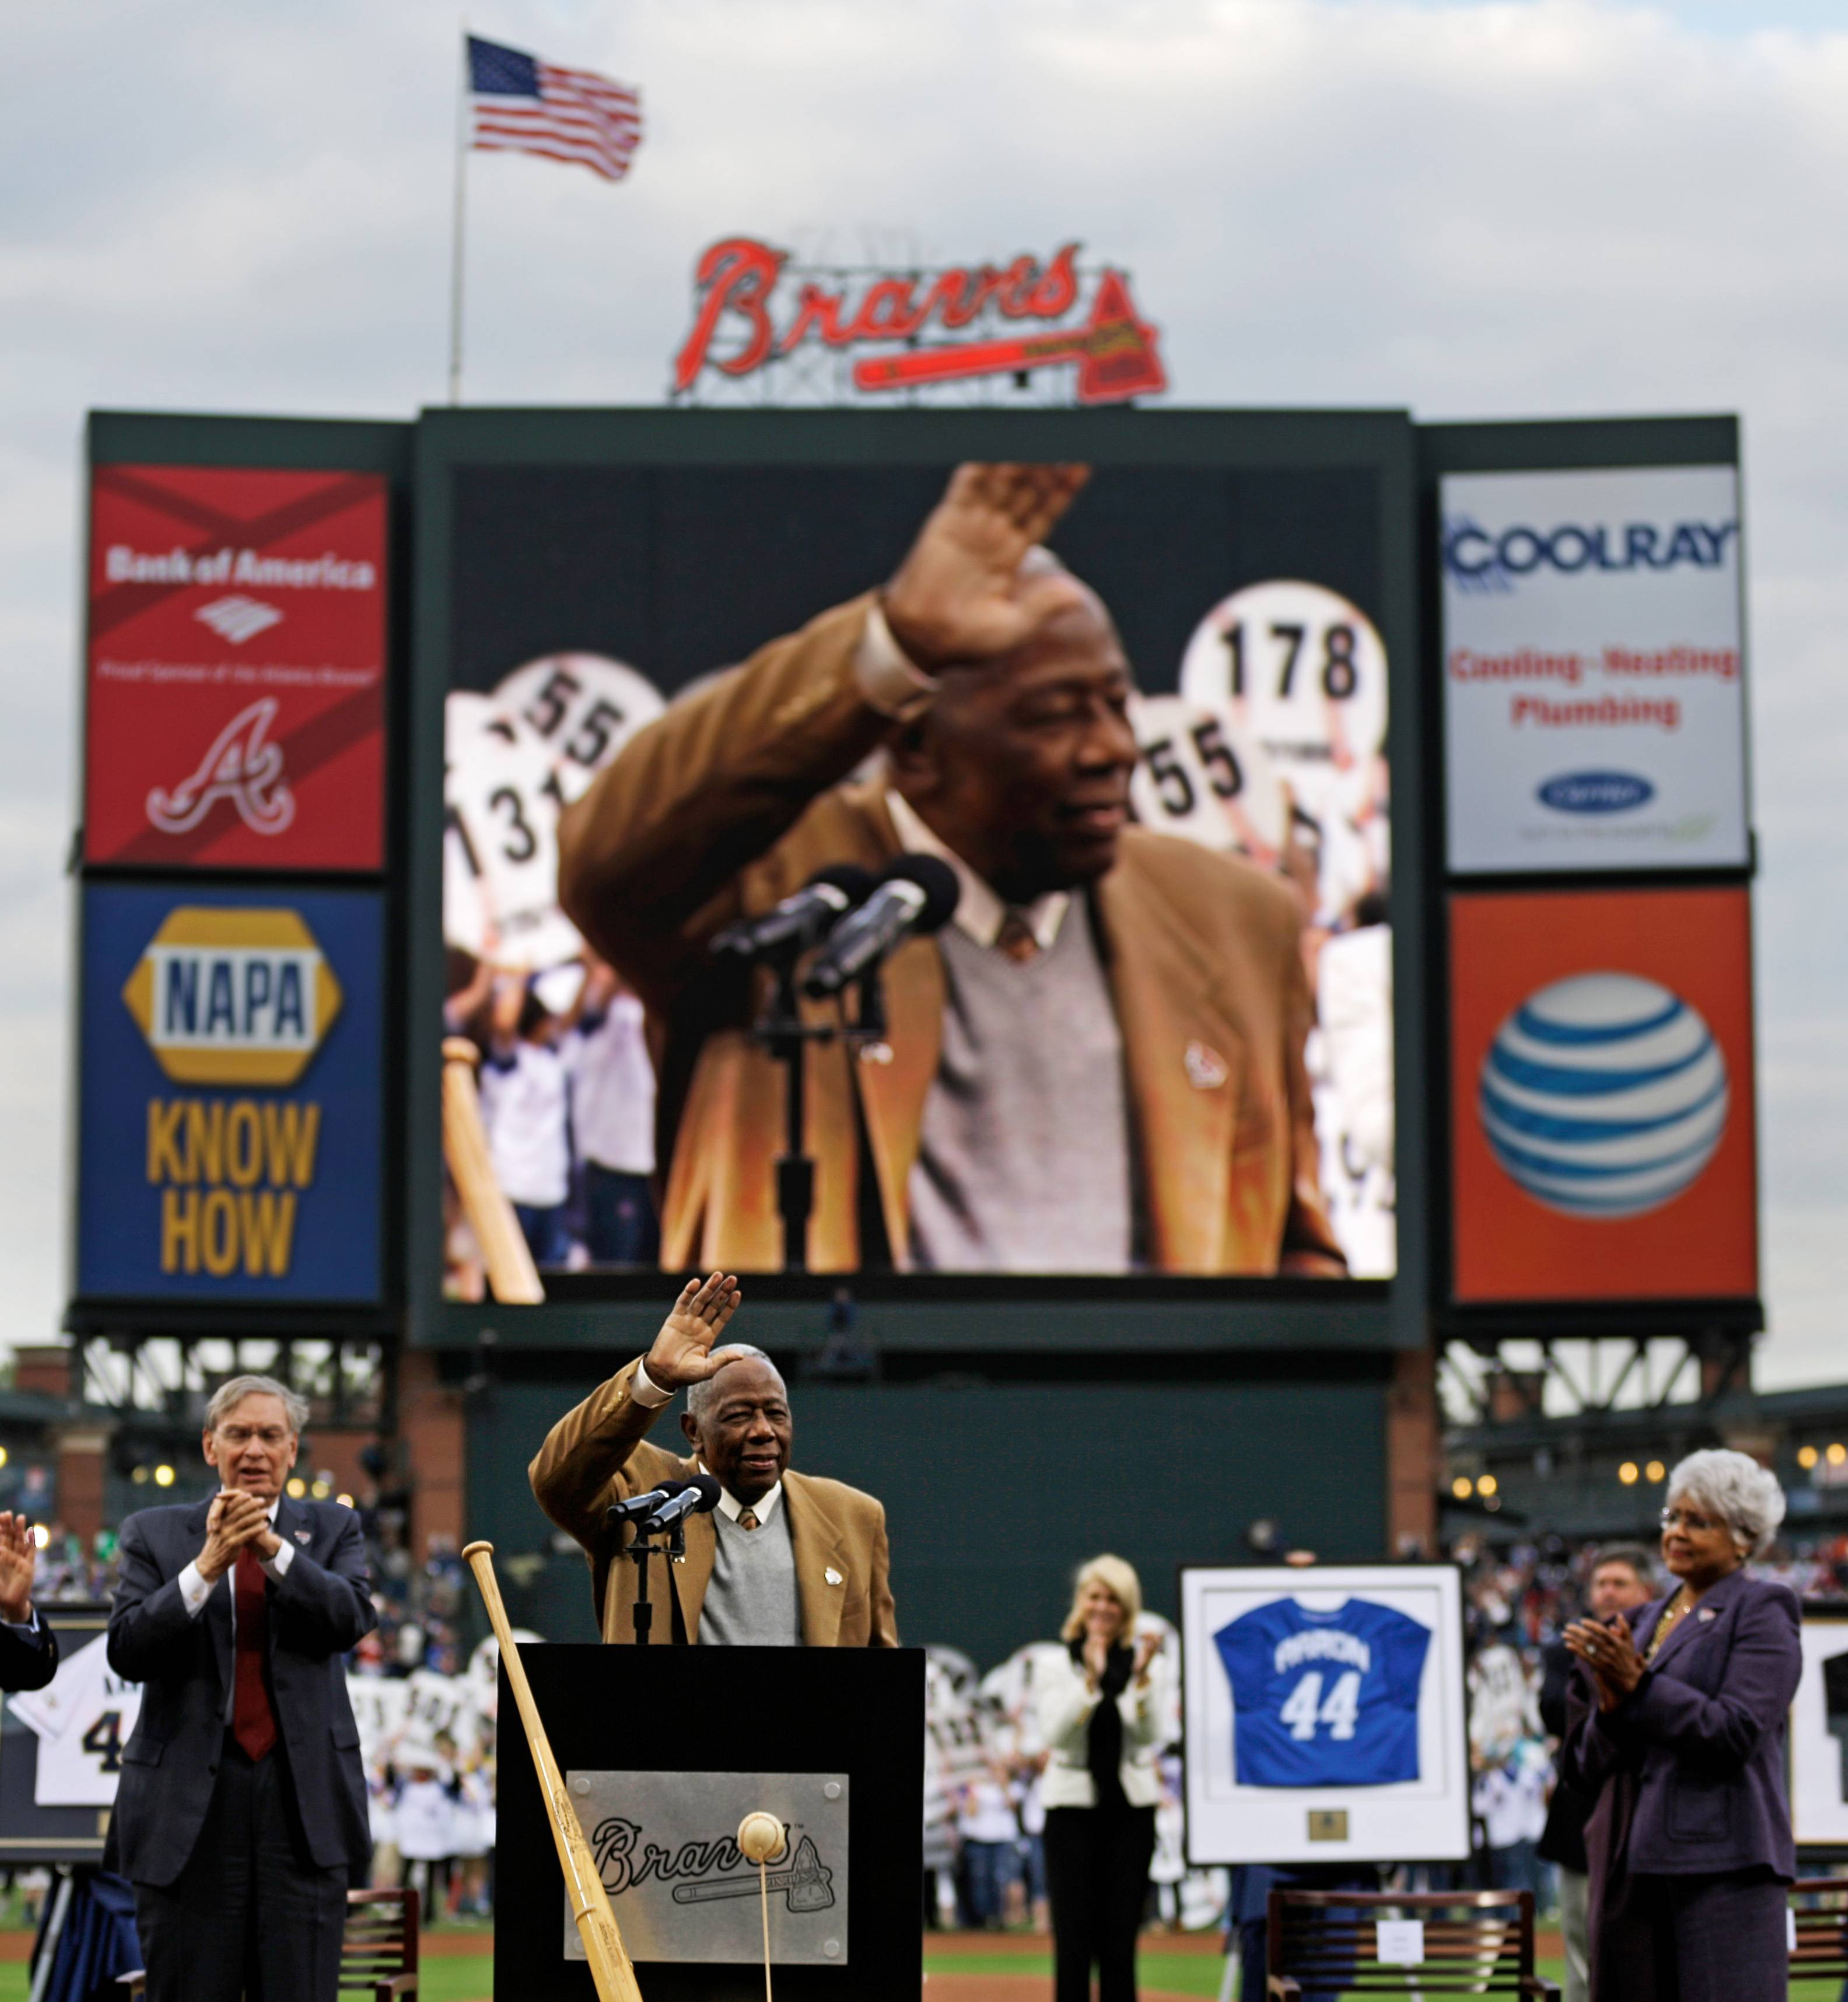 Hank Aaron waves to the crowd during a ceremony celebrating the 40th anniversary of his 715th home run before the start of Tuesday's game between the Atlanta Braves and the New York Mets in Atlanta.